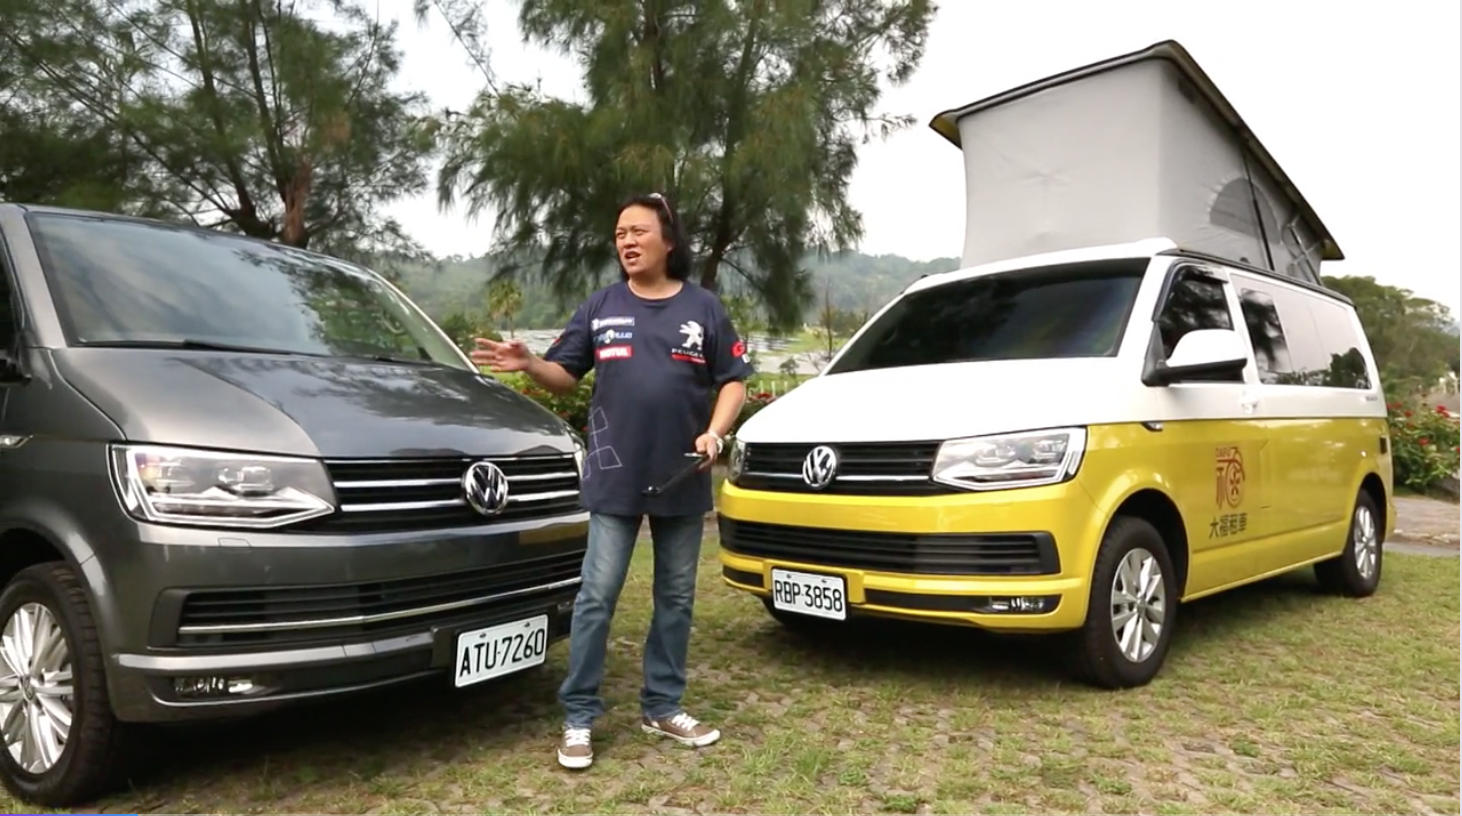 經典商旅兩樣情 Volkswagen Multivan & California Beach